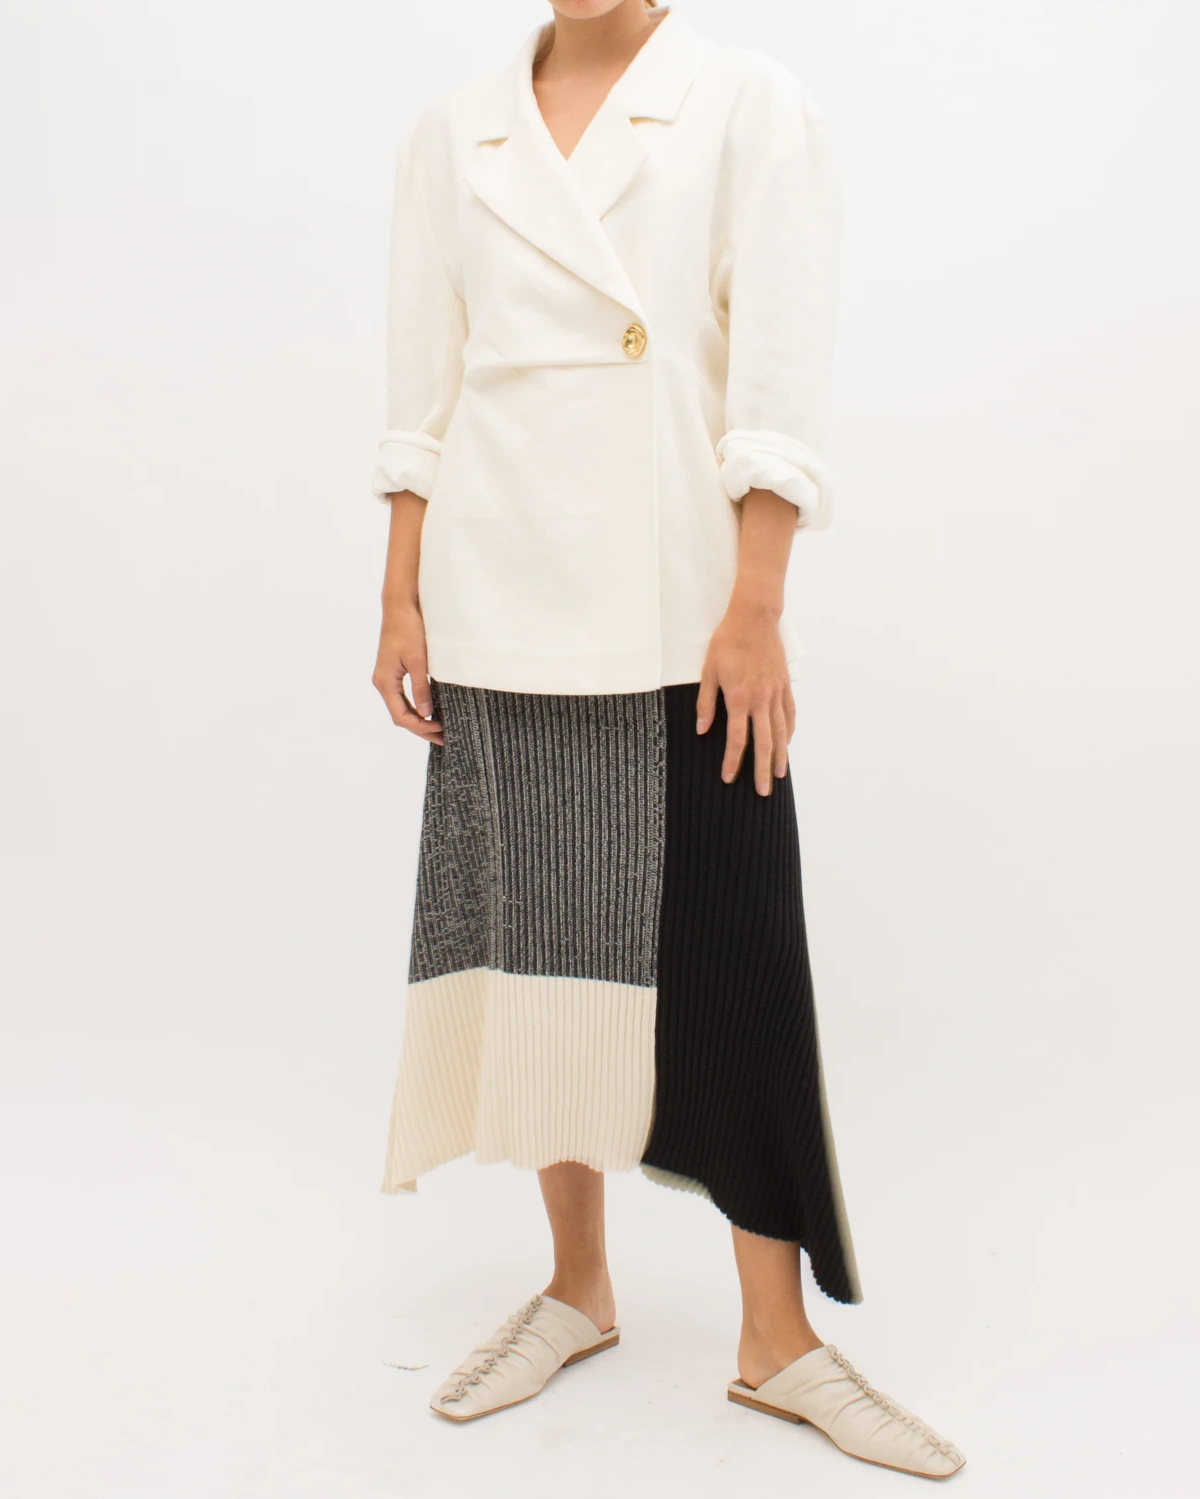 Jodie Jacket Linen Twill Blend Ivory - SPECIAL PRICE